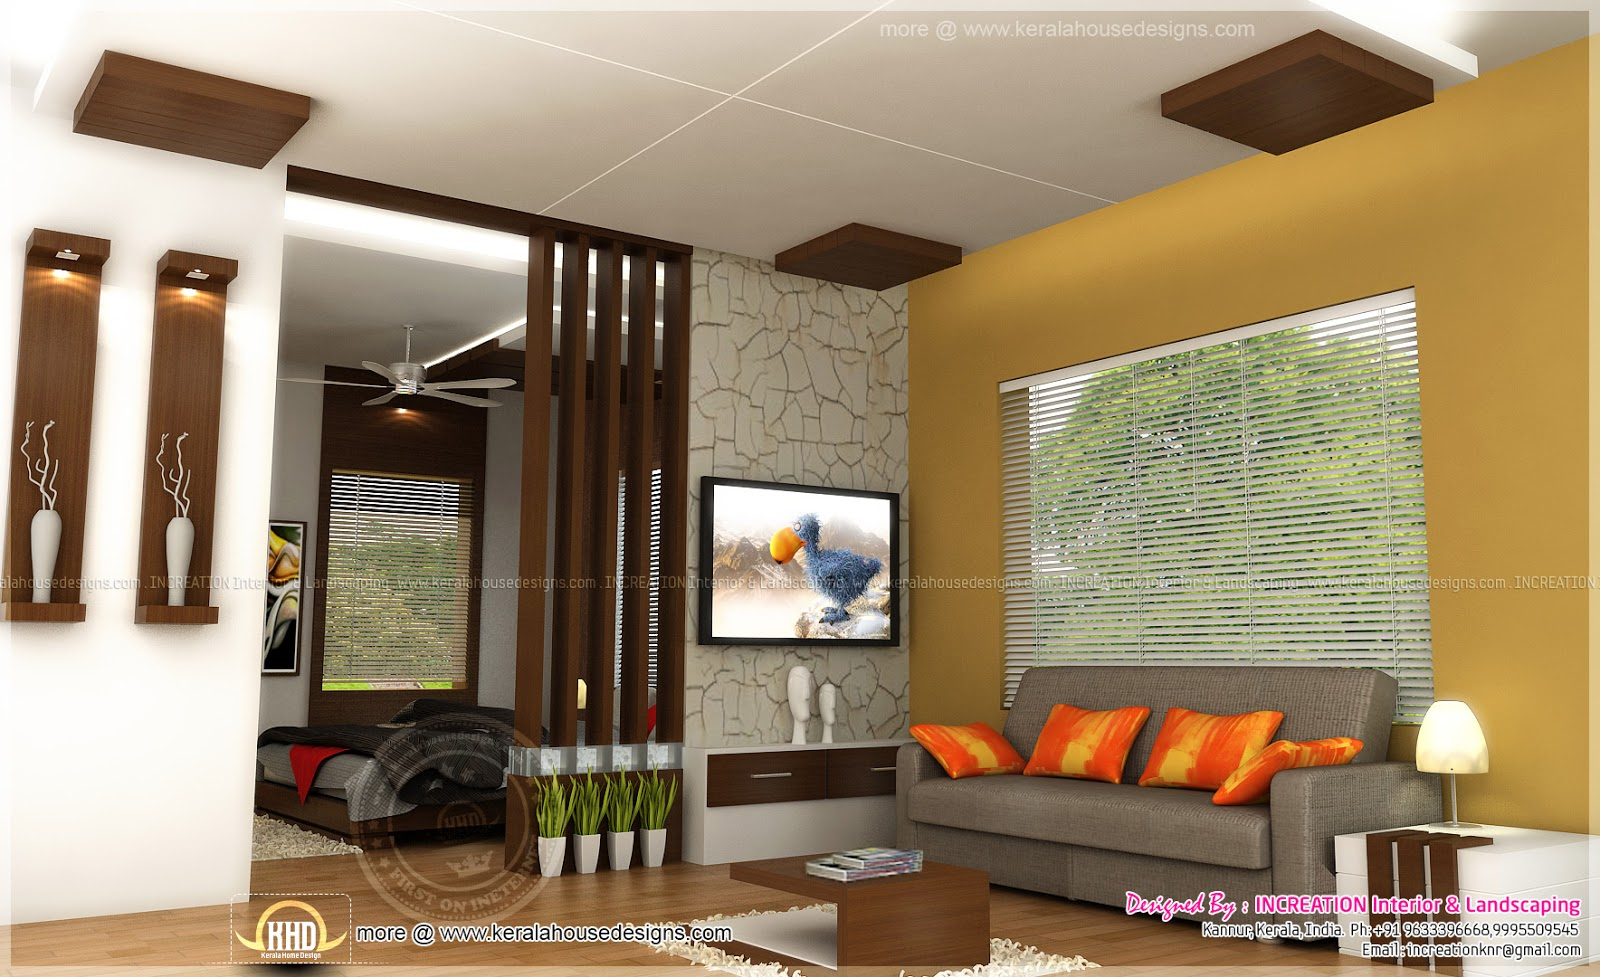 Interior designs from kannur kerala home kerala plans for Interior wallpaper designs india